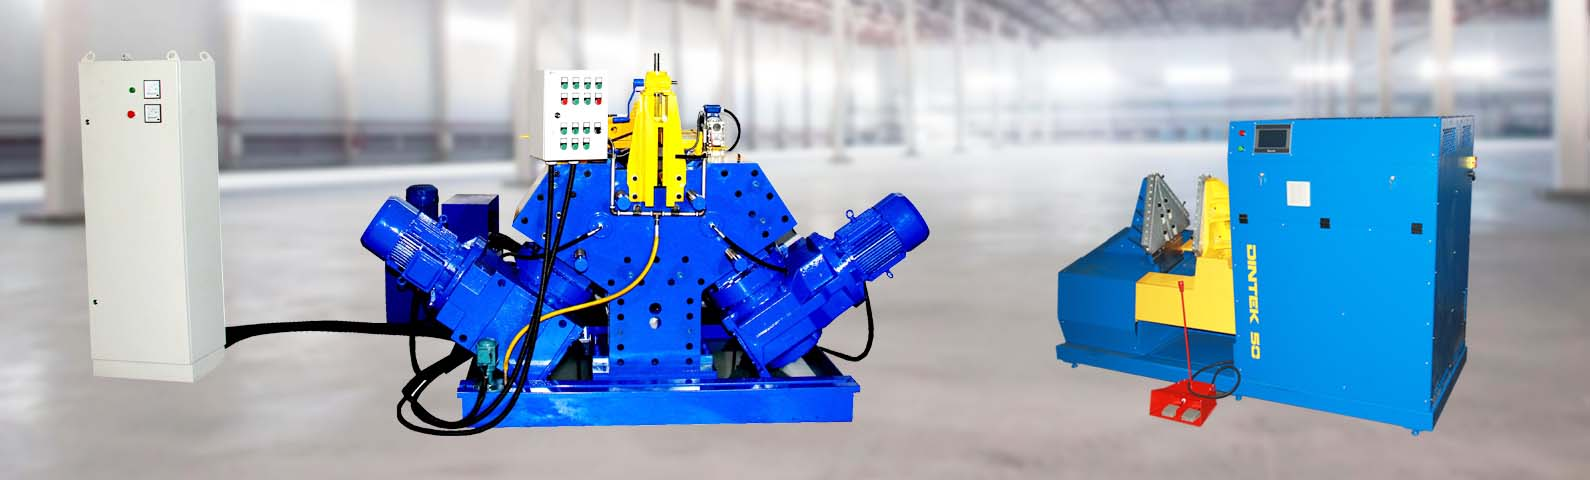 There are 2 machine models having different principles of screw and auger manufacturing available for sale: SG5 (СГ5) and Dintek